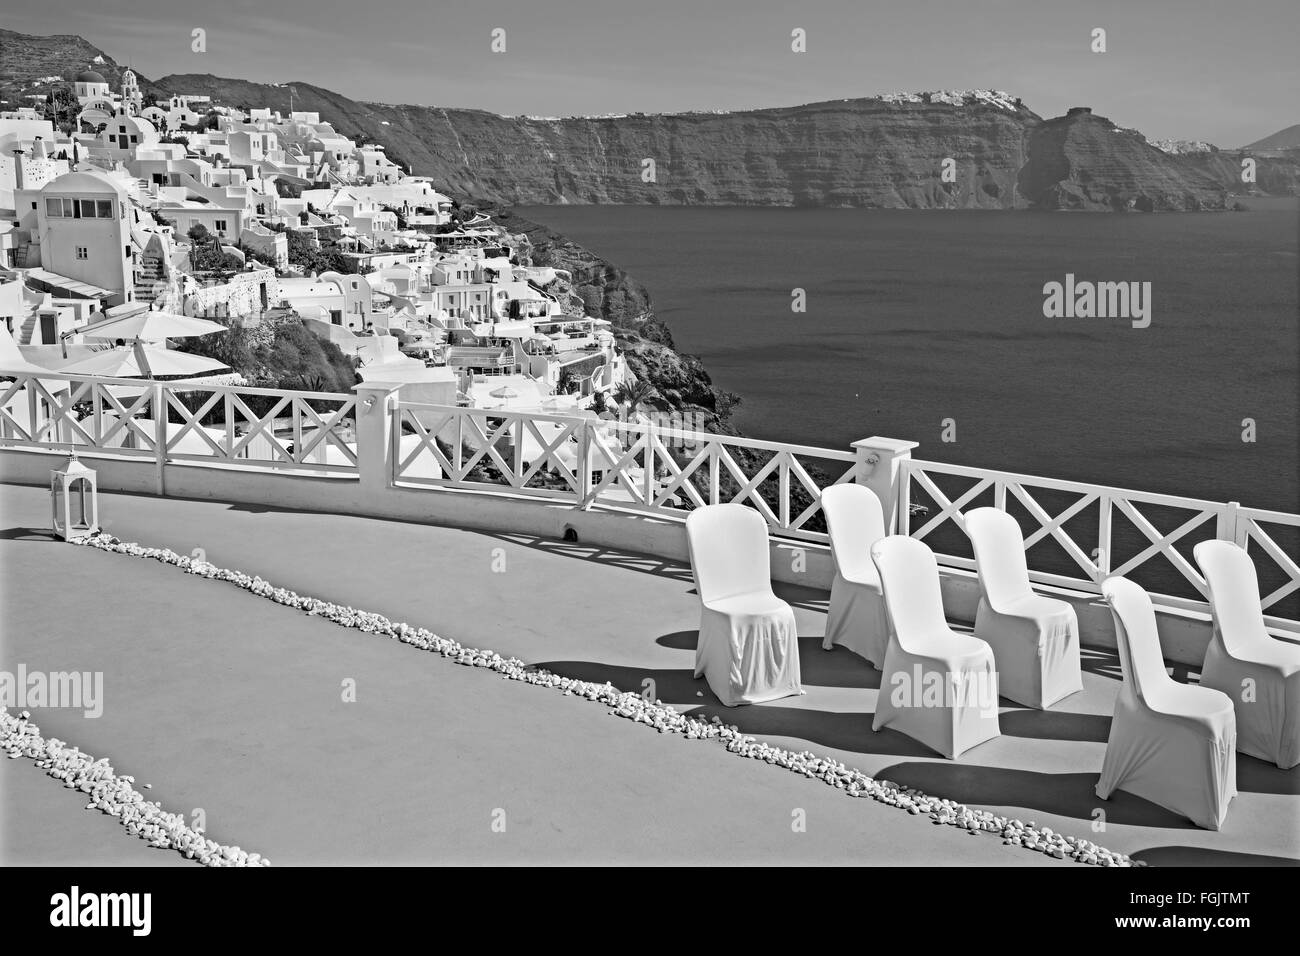 Santorini - The luxury resort geared to wedding ceremony in Oia (Ia) and the caldera cliffs in the background. - Stock Image